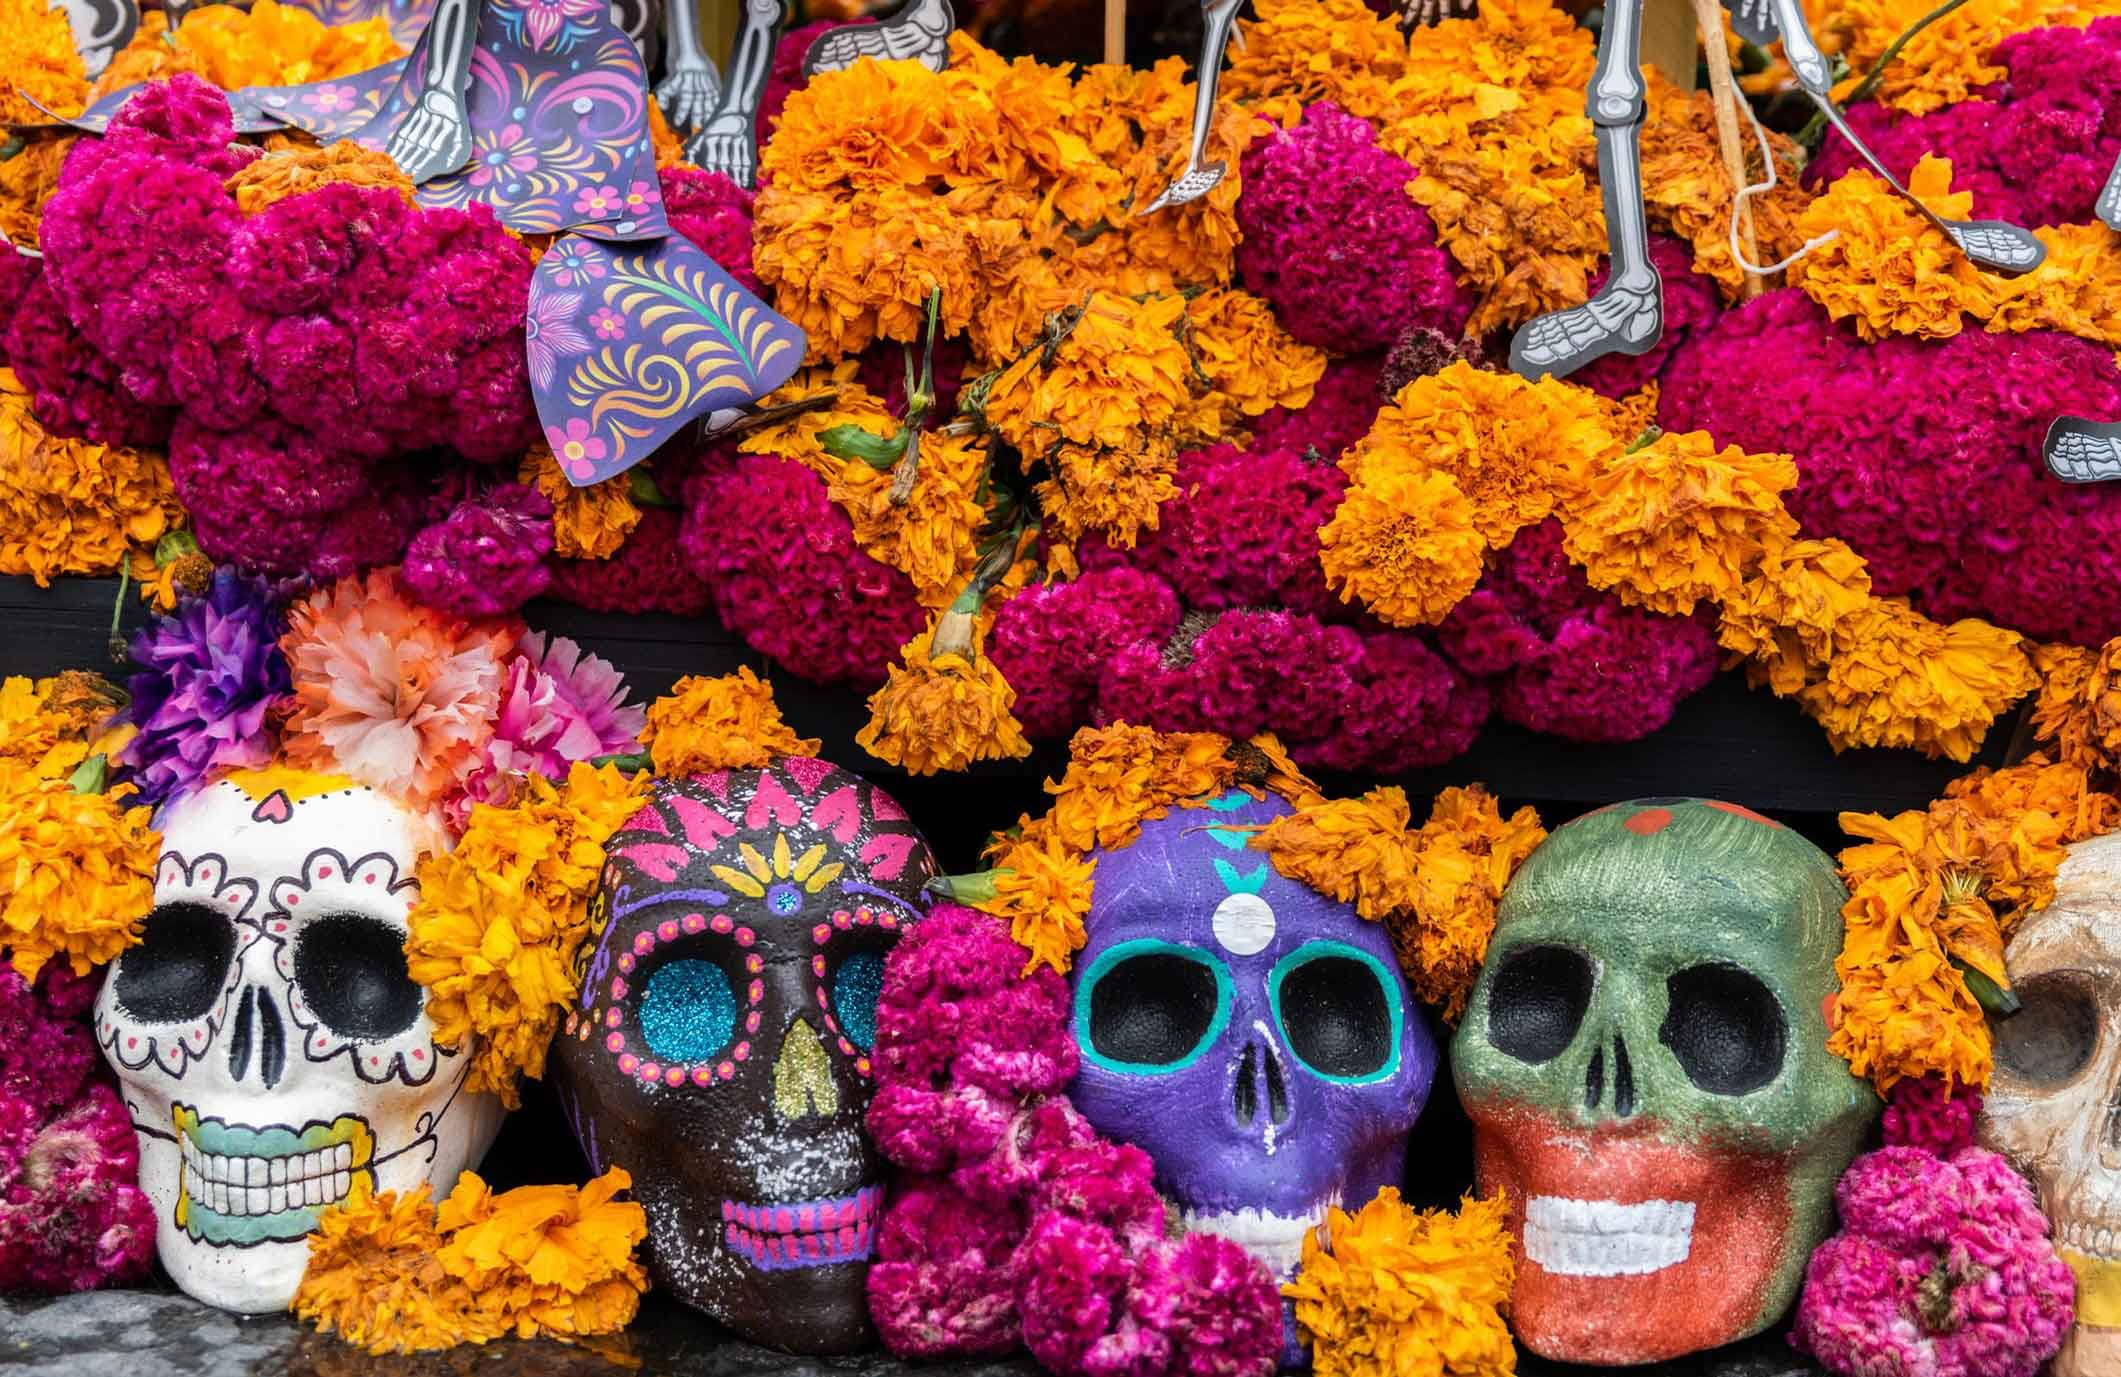 Day of the Dead is not Halloween